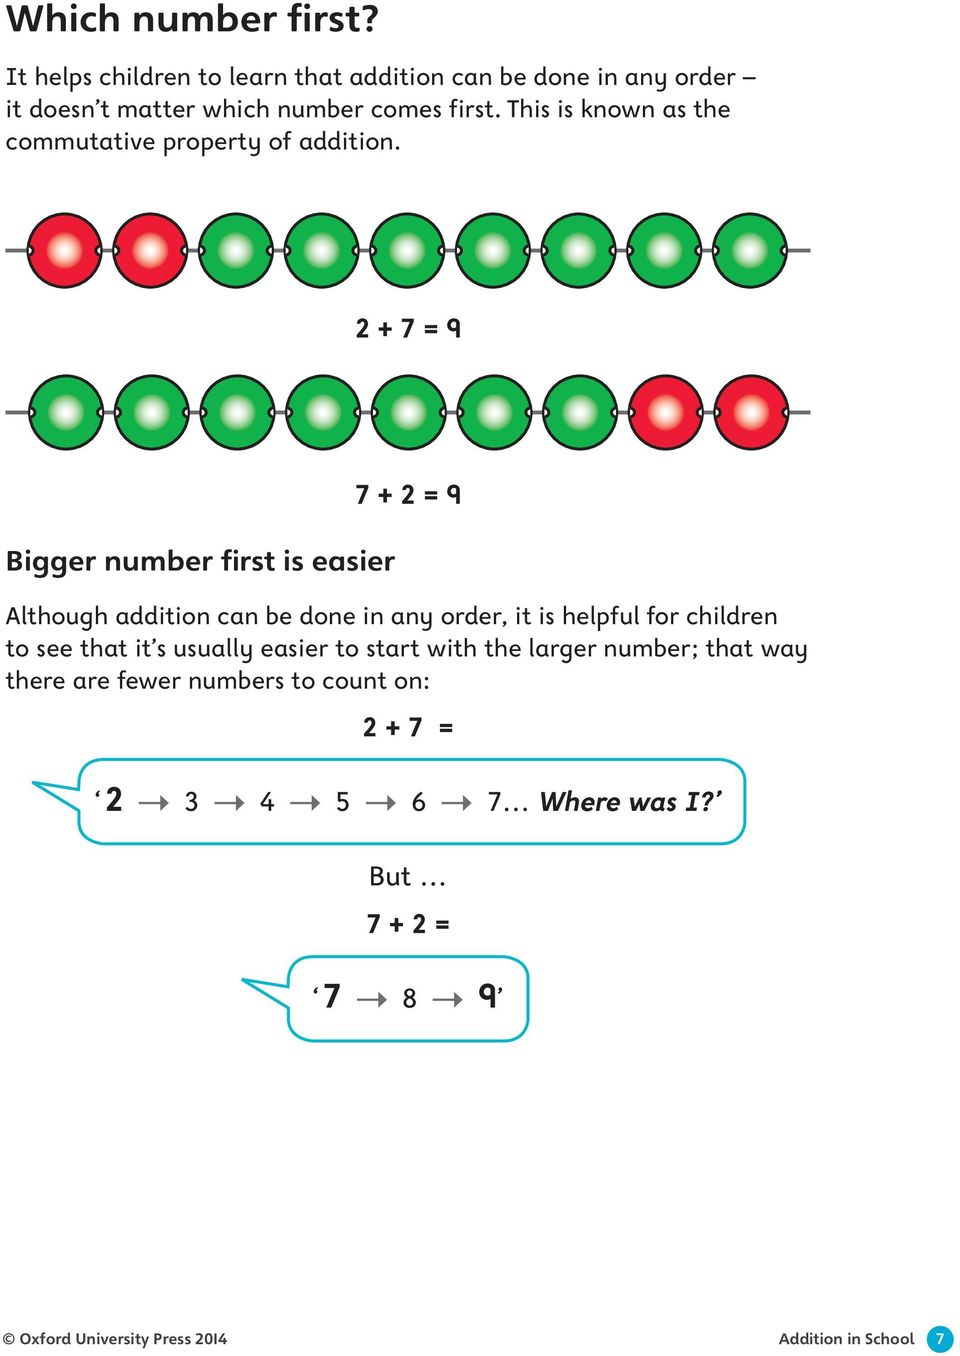 2 + 7 = 9 Bigger number first is easier 7 + 2 = 9 Although addition can be done in any order, it is helpful for children to see